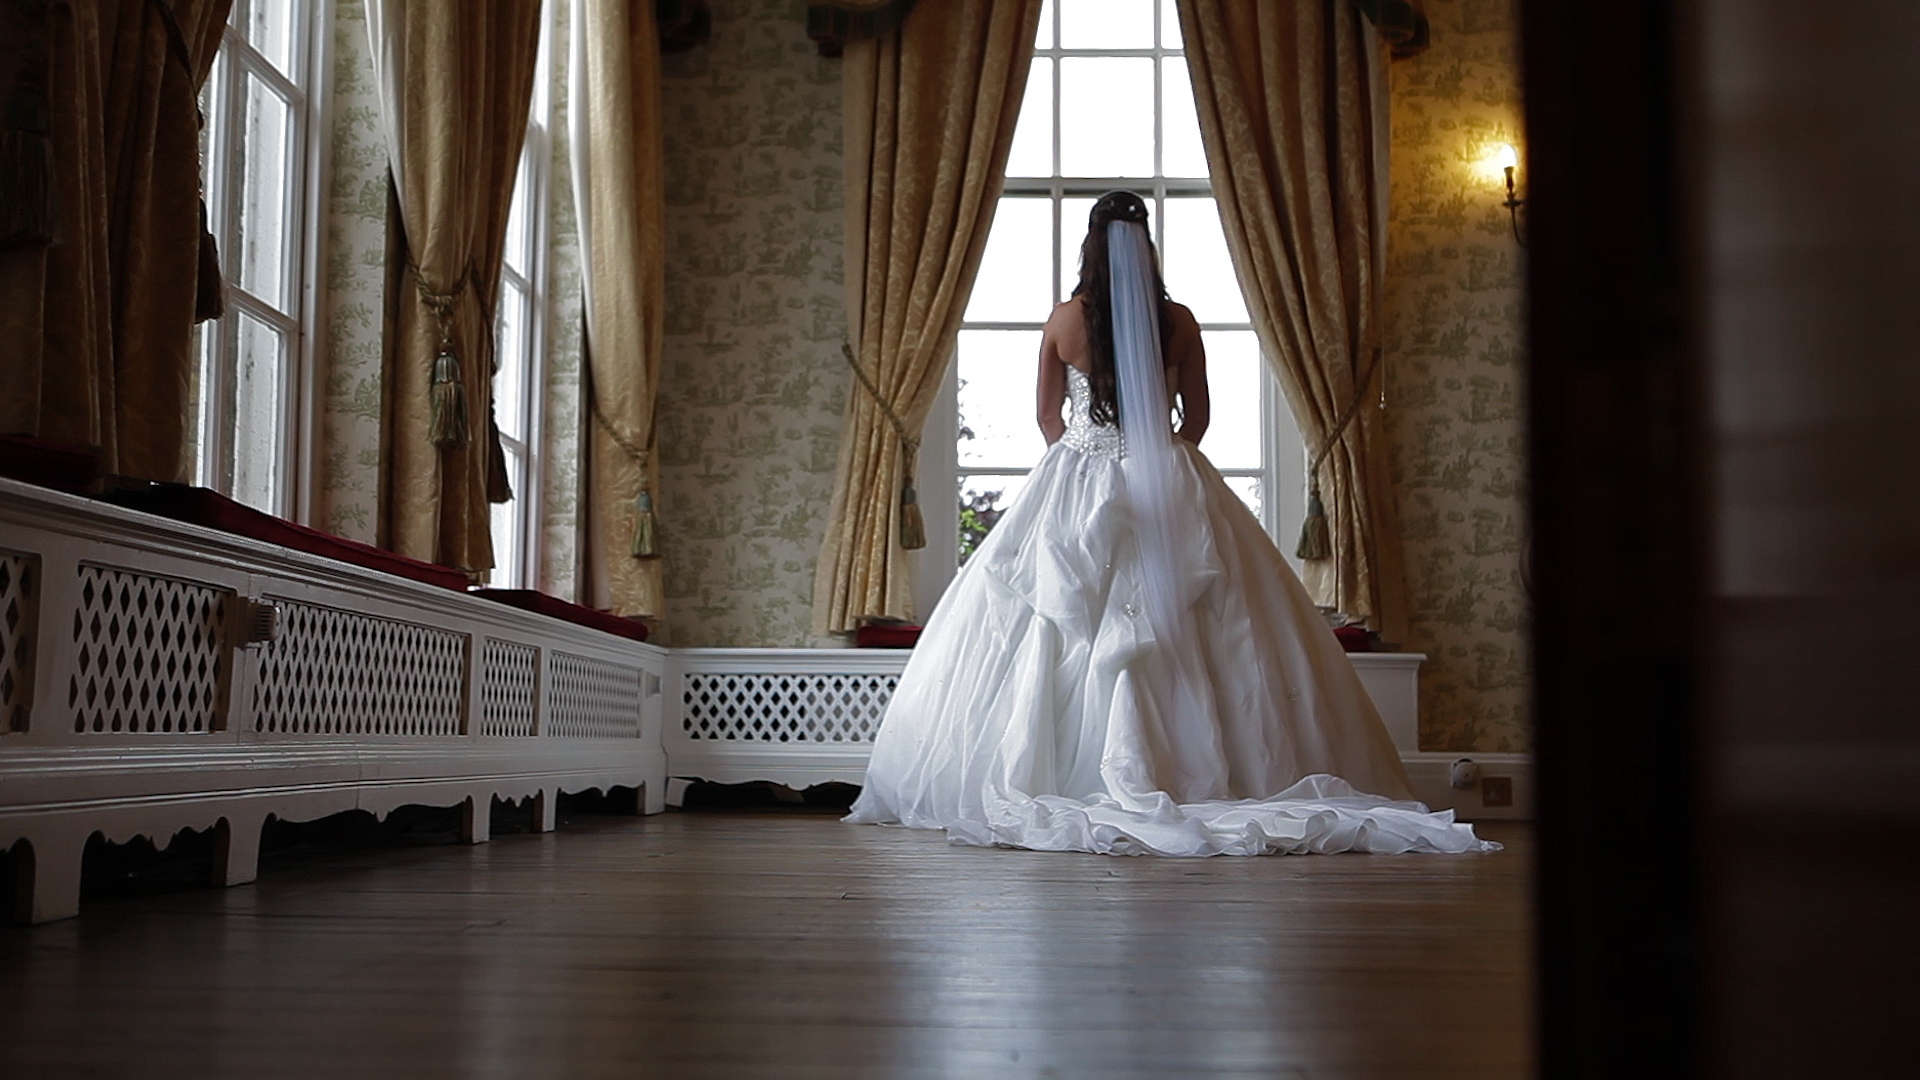 Quendon Hall, parklands, bride in the window